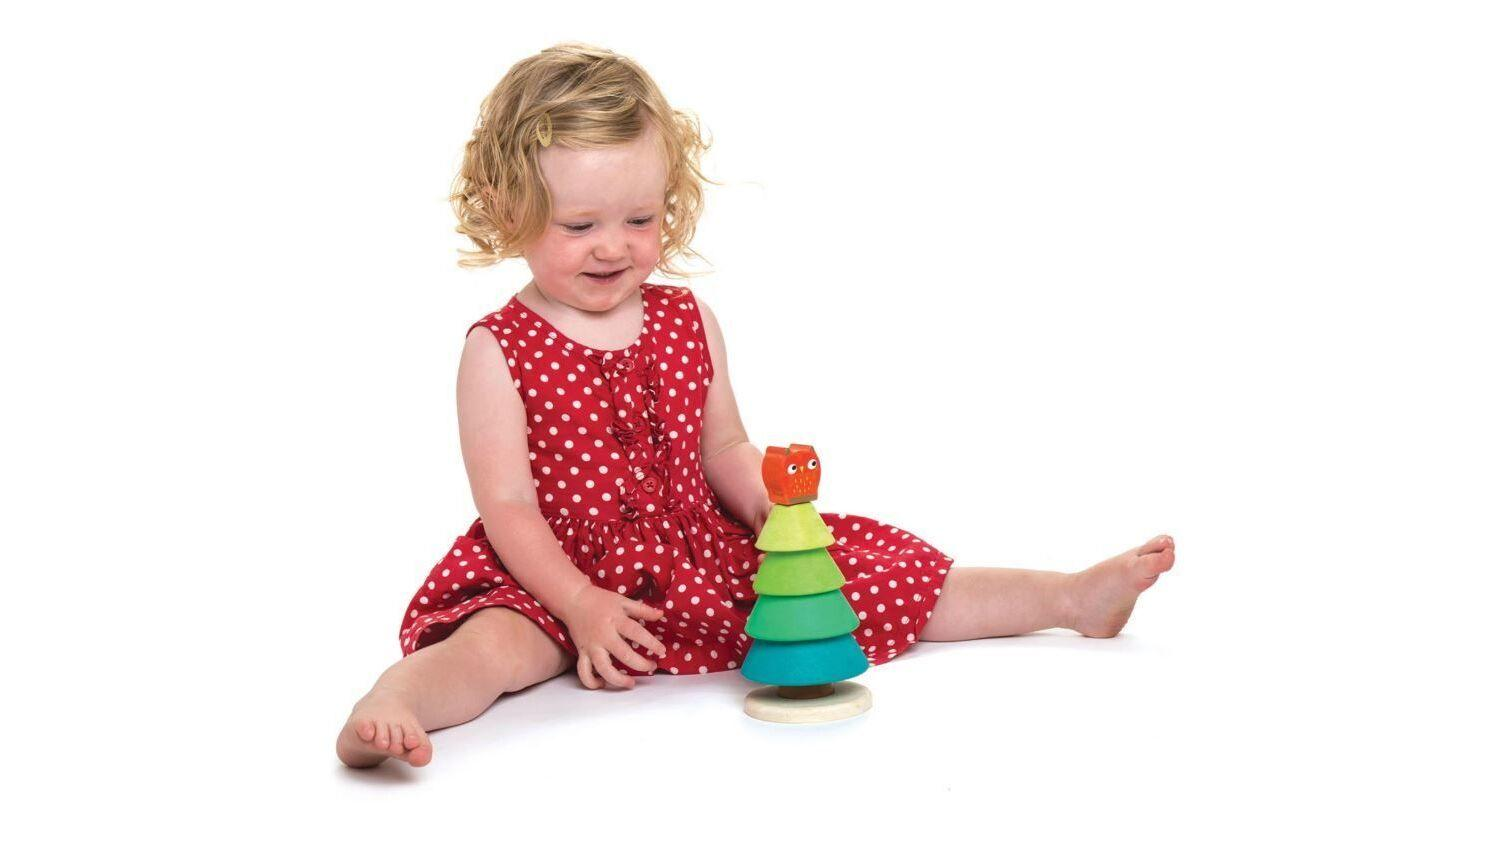 New Wooden Toy Stacking Fir Tree Topped with a Red Owl